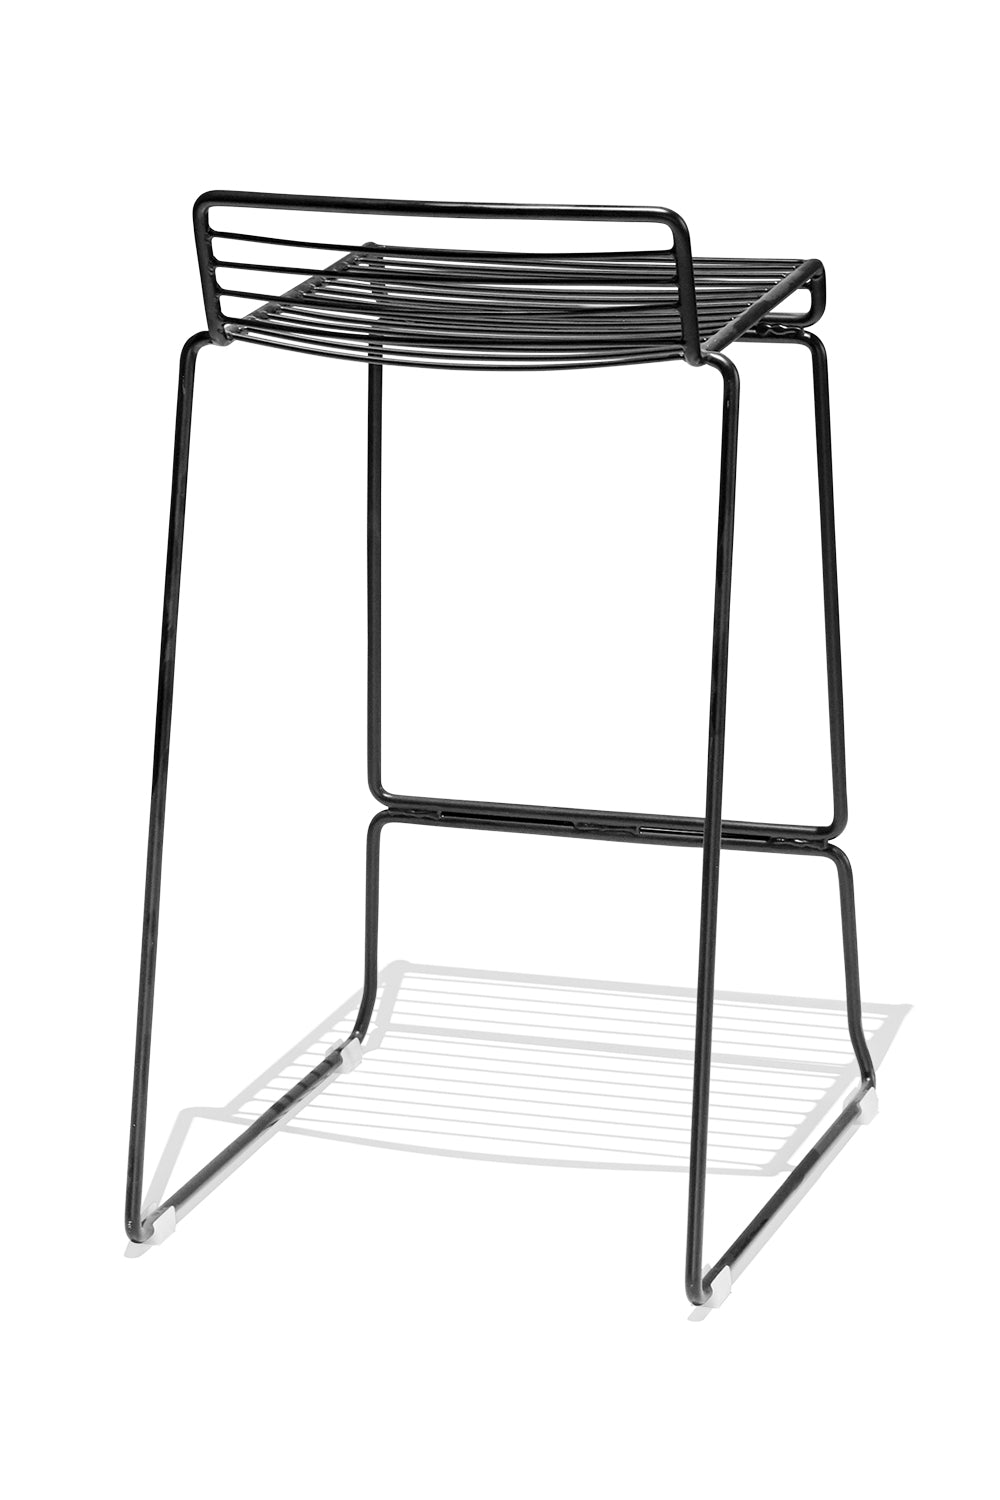 HANS bar stool